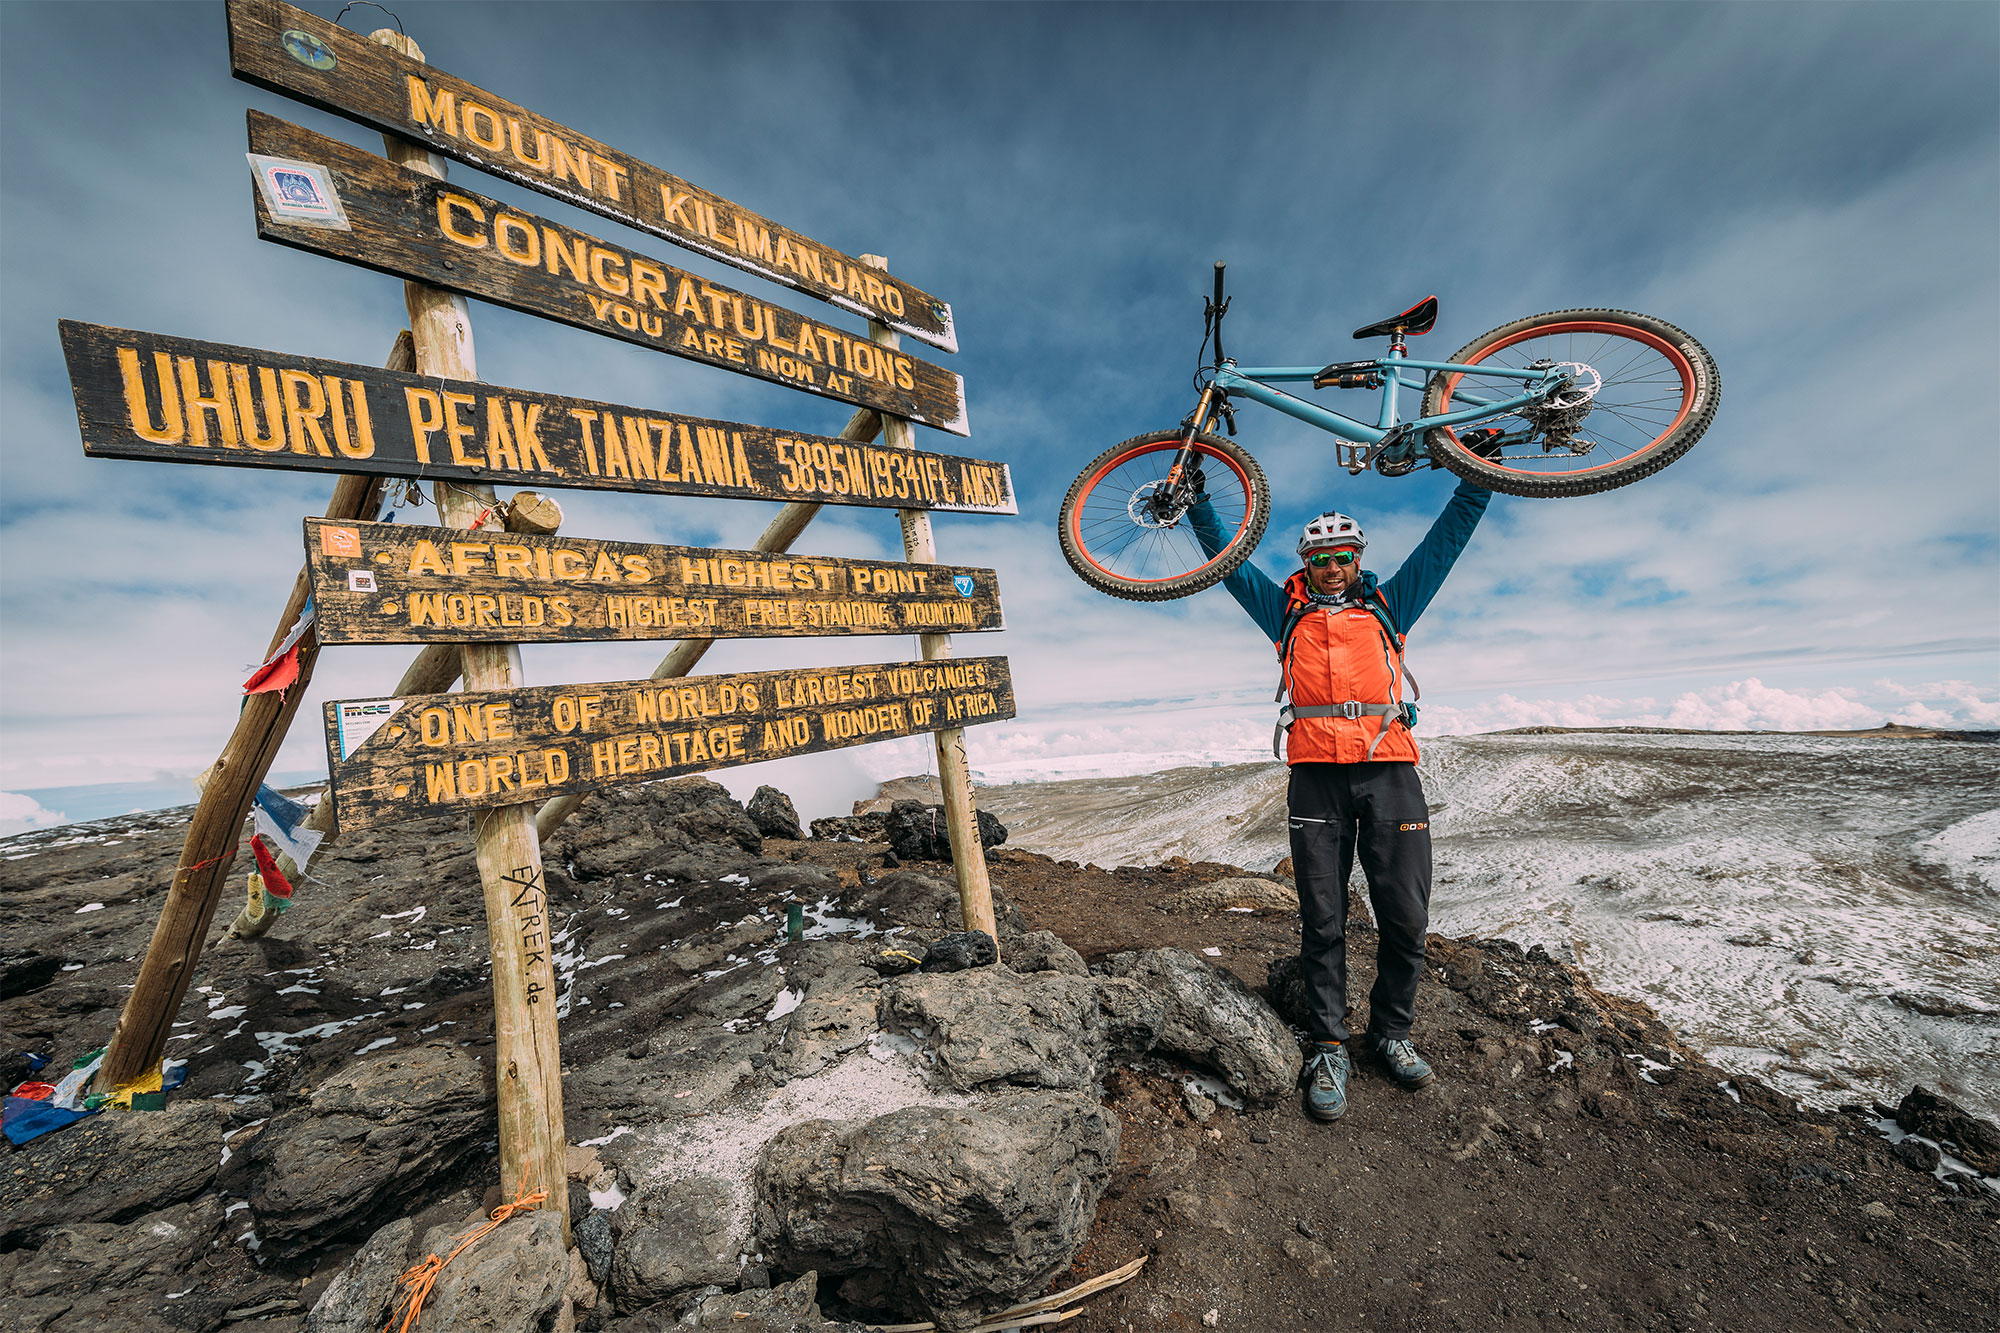 BE ONE OF THE FIRST<br>MOUNTAINBIKERS<br>ON TOP OF KILIMANJARO